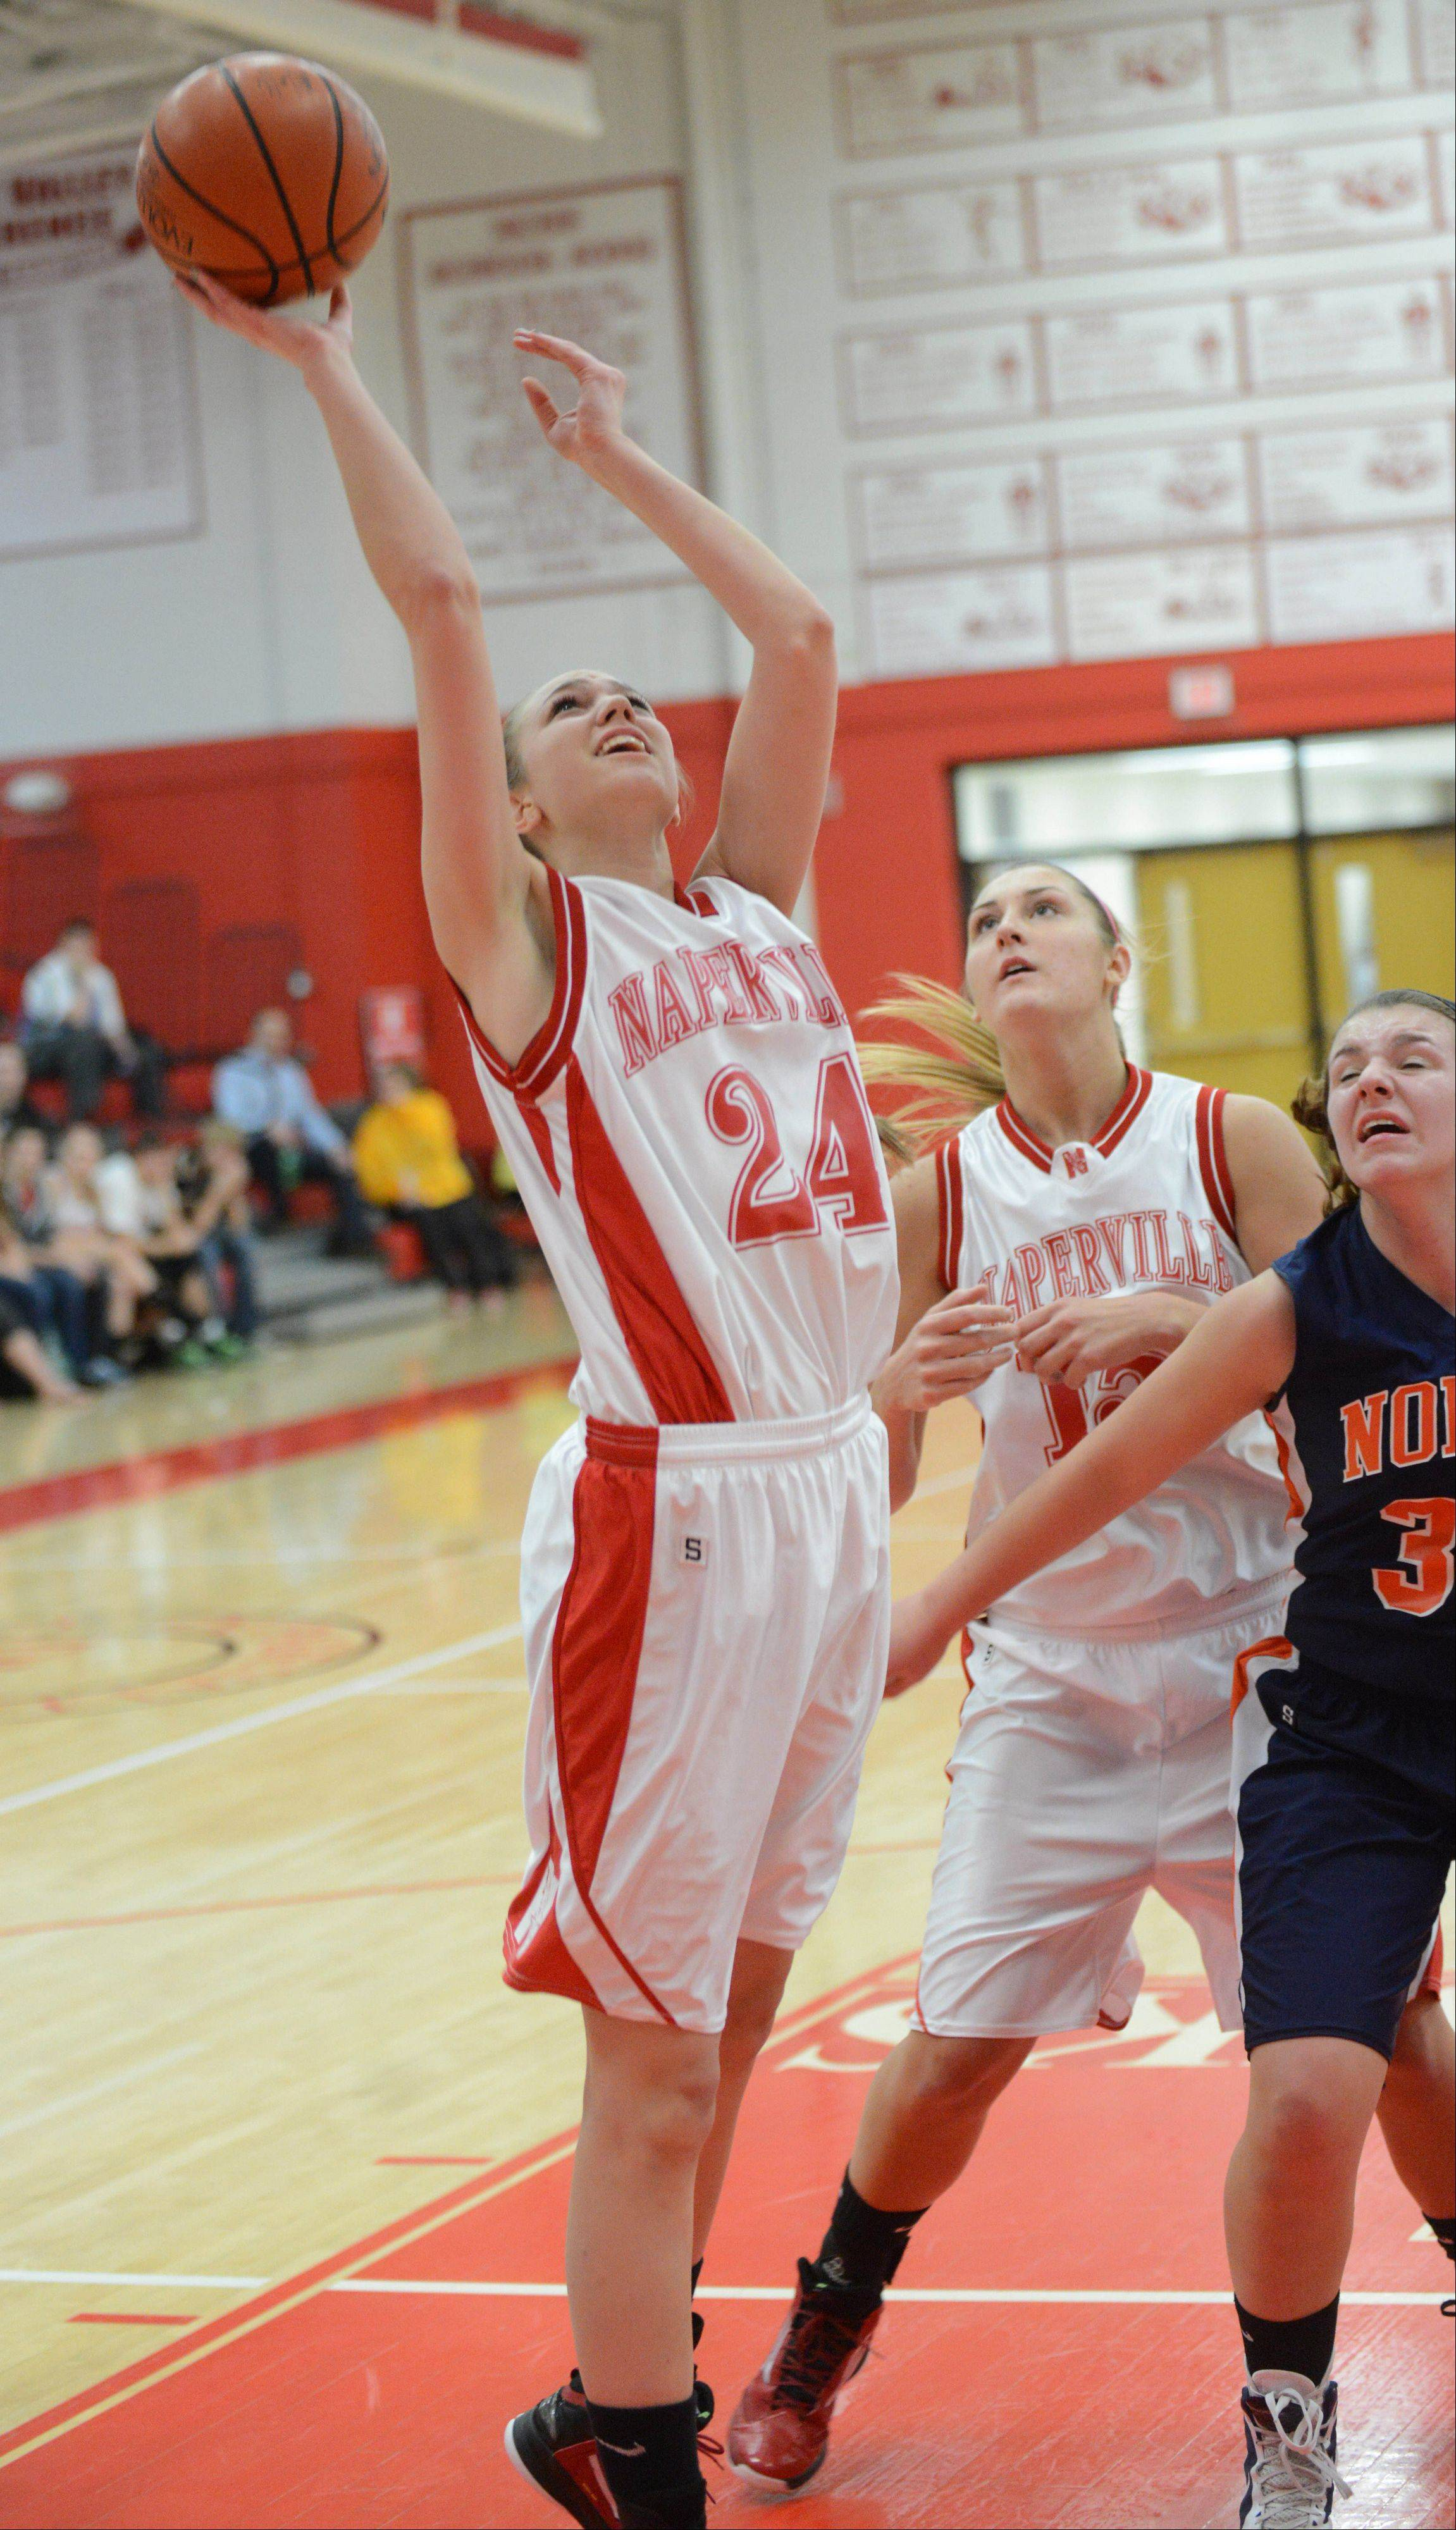 Jamie Cuny of Naperville Central takes a shot during the Naperville North at Naperville Central girls basketball game Thursday.